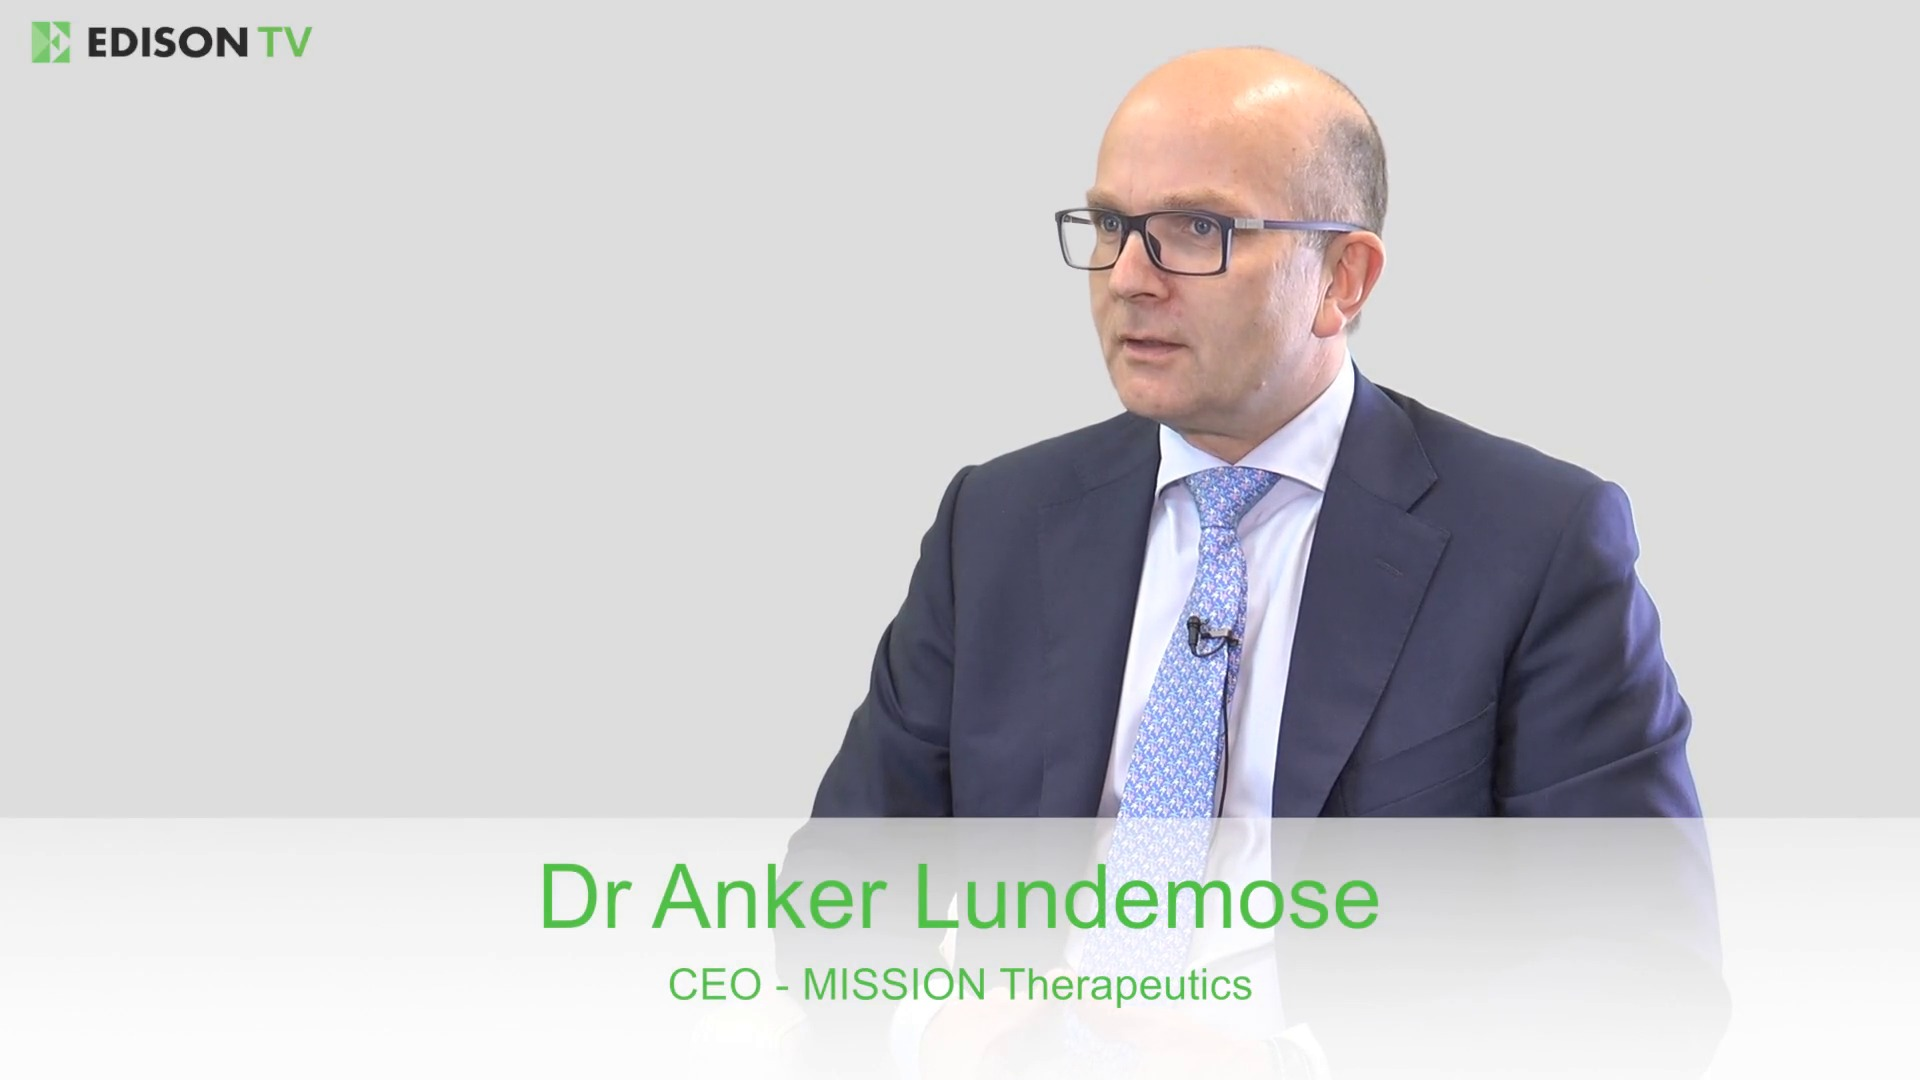 Executive Interview - MISSION Therapeutics